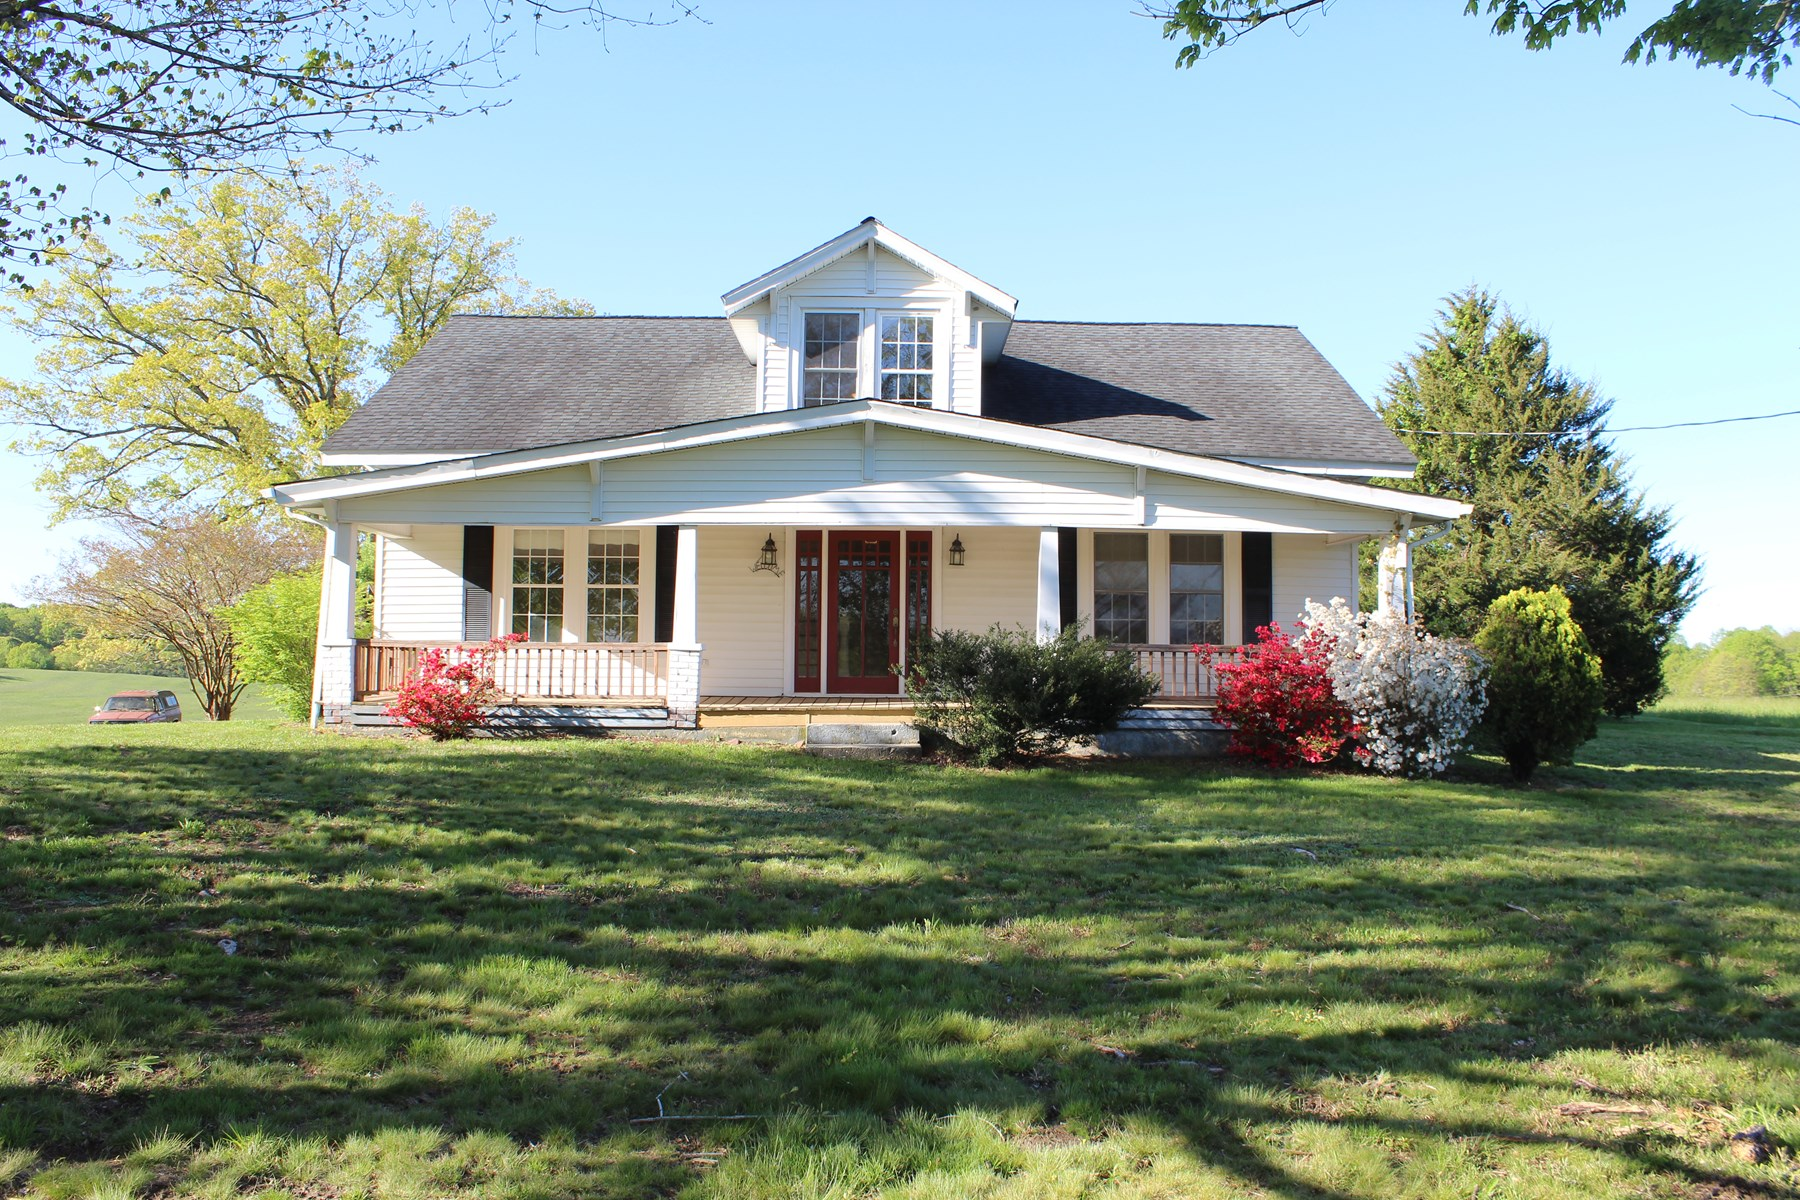 TWO STORY HOME FOR SELL IN PATRICK COUNTY, VA